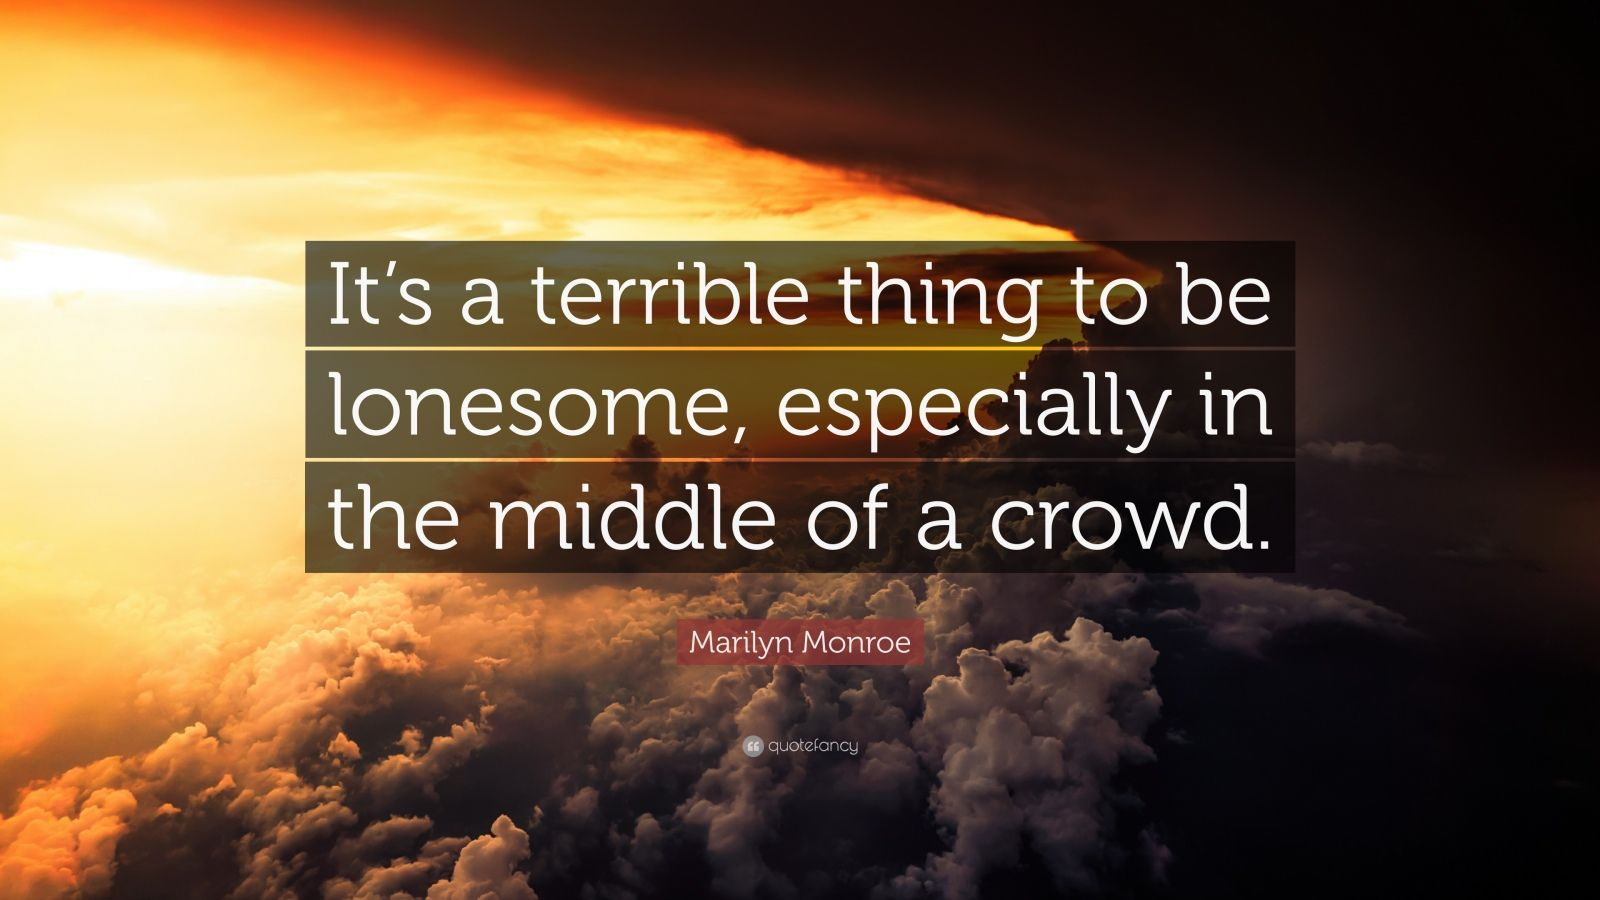 """Marilyn Monroe Quote: """"It's a terrible thing to be lonesome, especially in the middle of a crowd."""""""